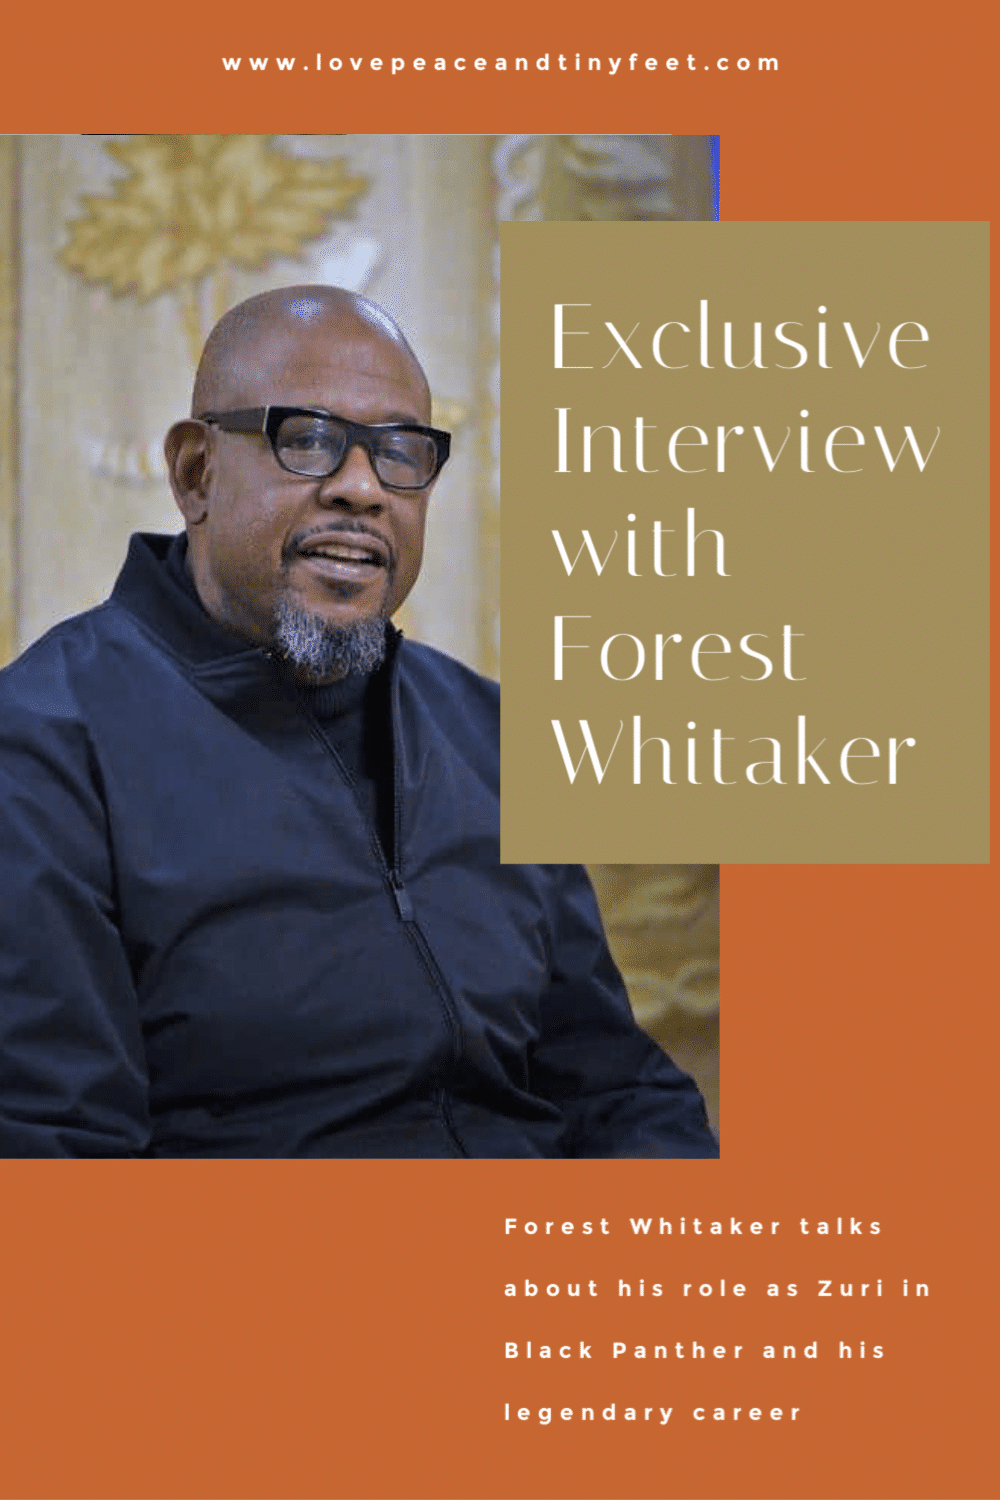 Exclusive Interview with Forest Whitaker about his role as Zuri in Black Panther, his legendary career and how he came to be a part of the Marvel Universe.